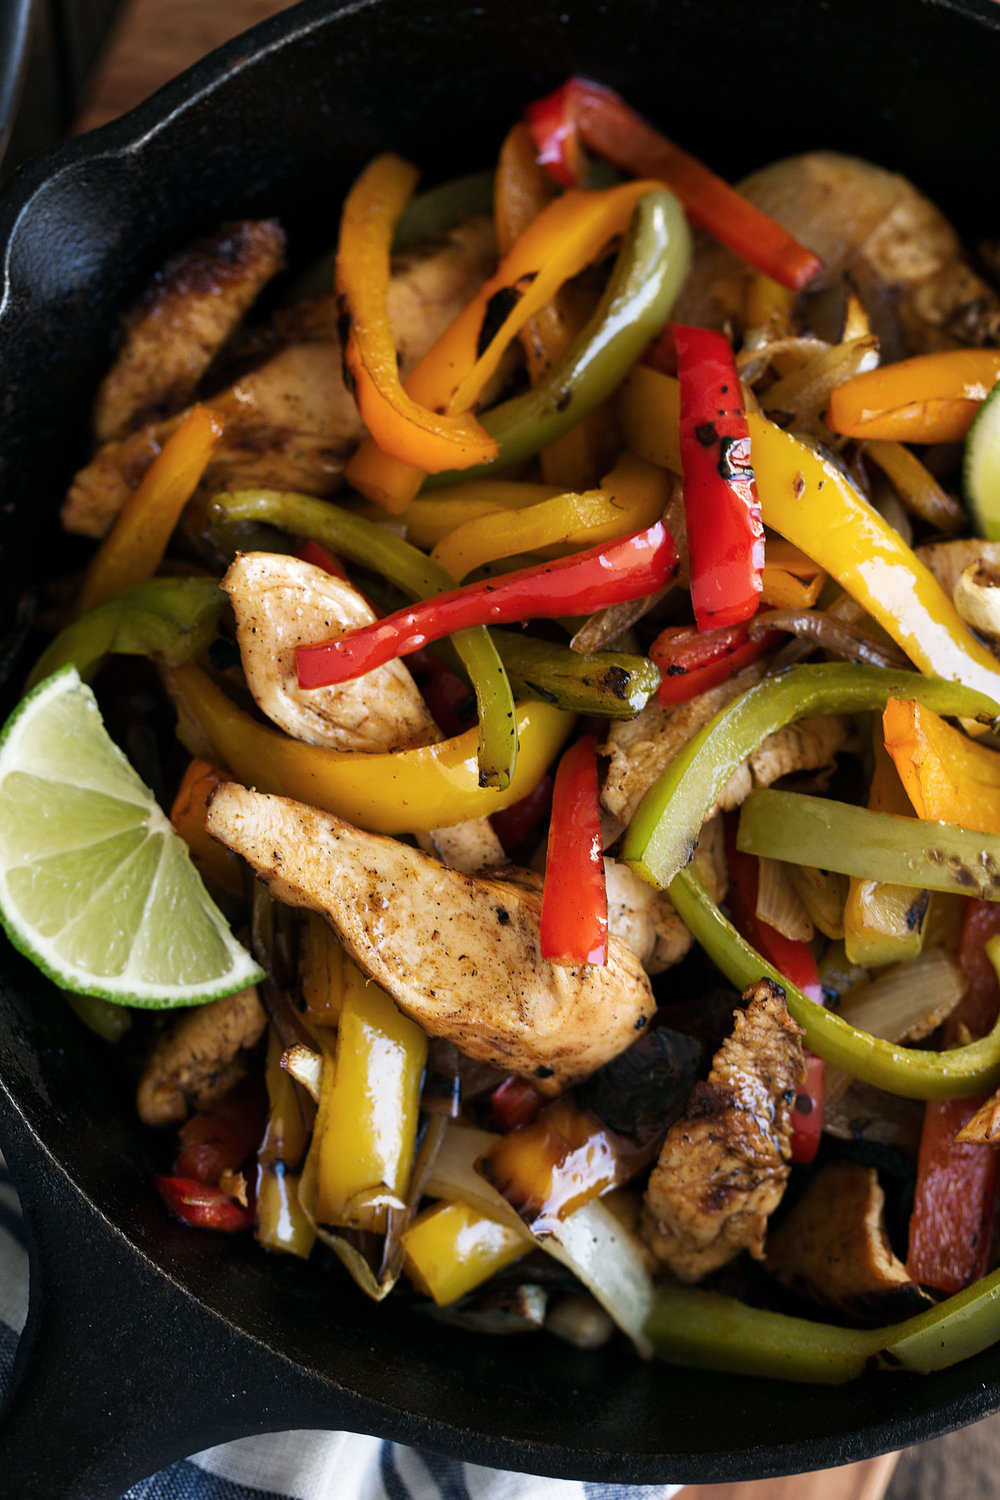 Tequila lime marinade for chicken fajitas